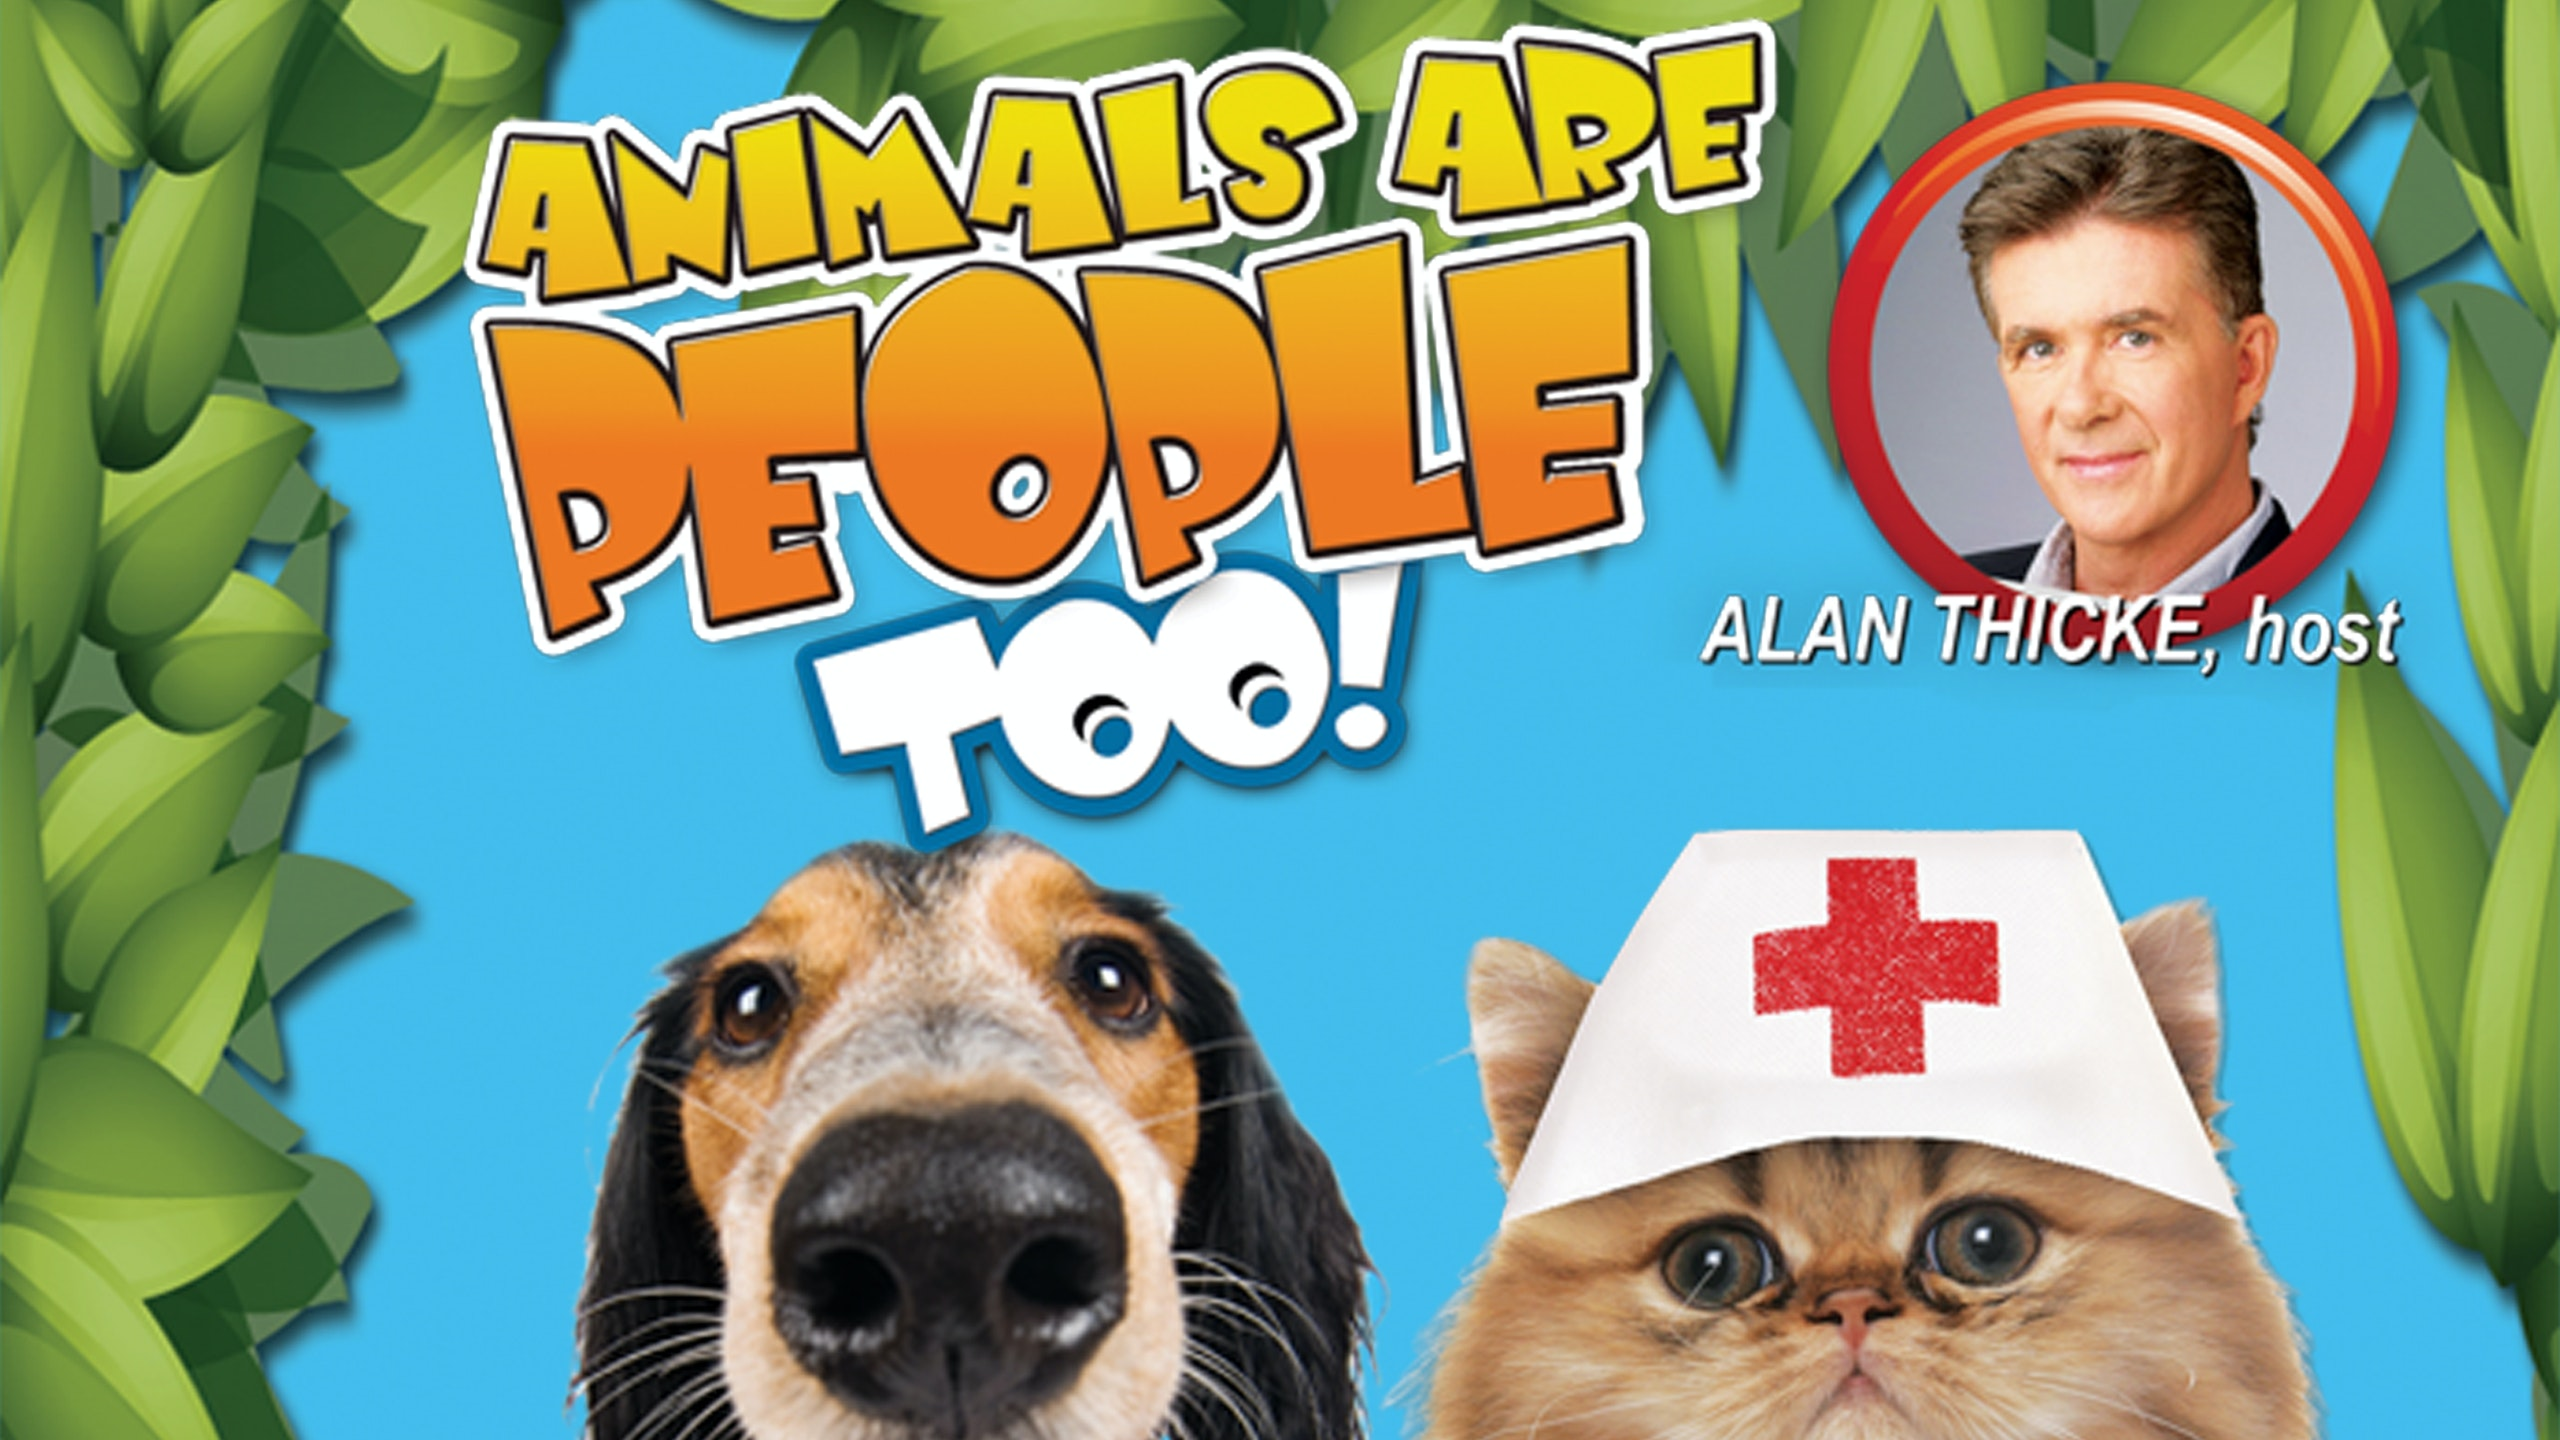 Animals are people too movie